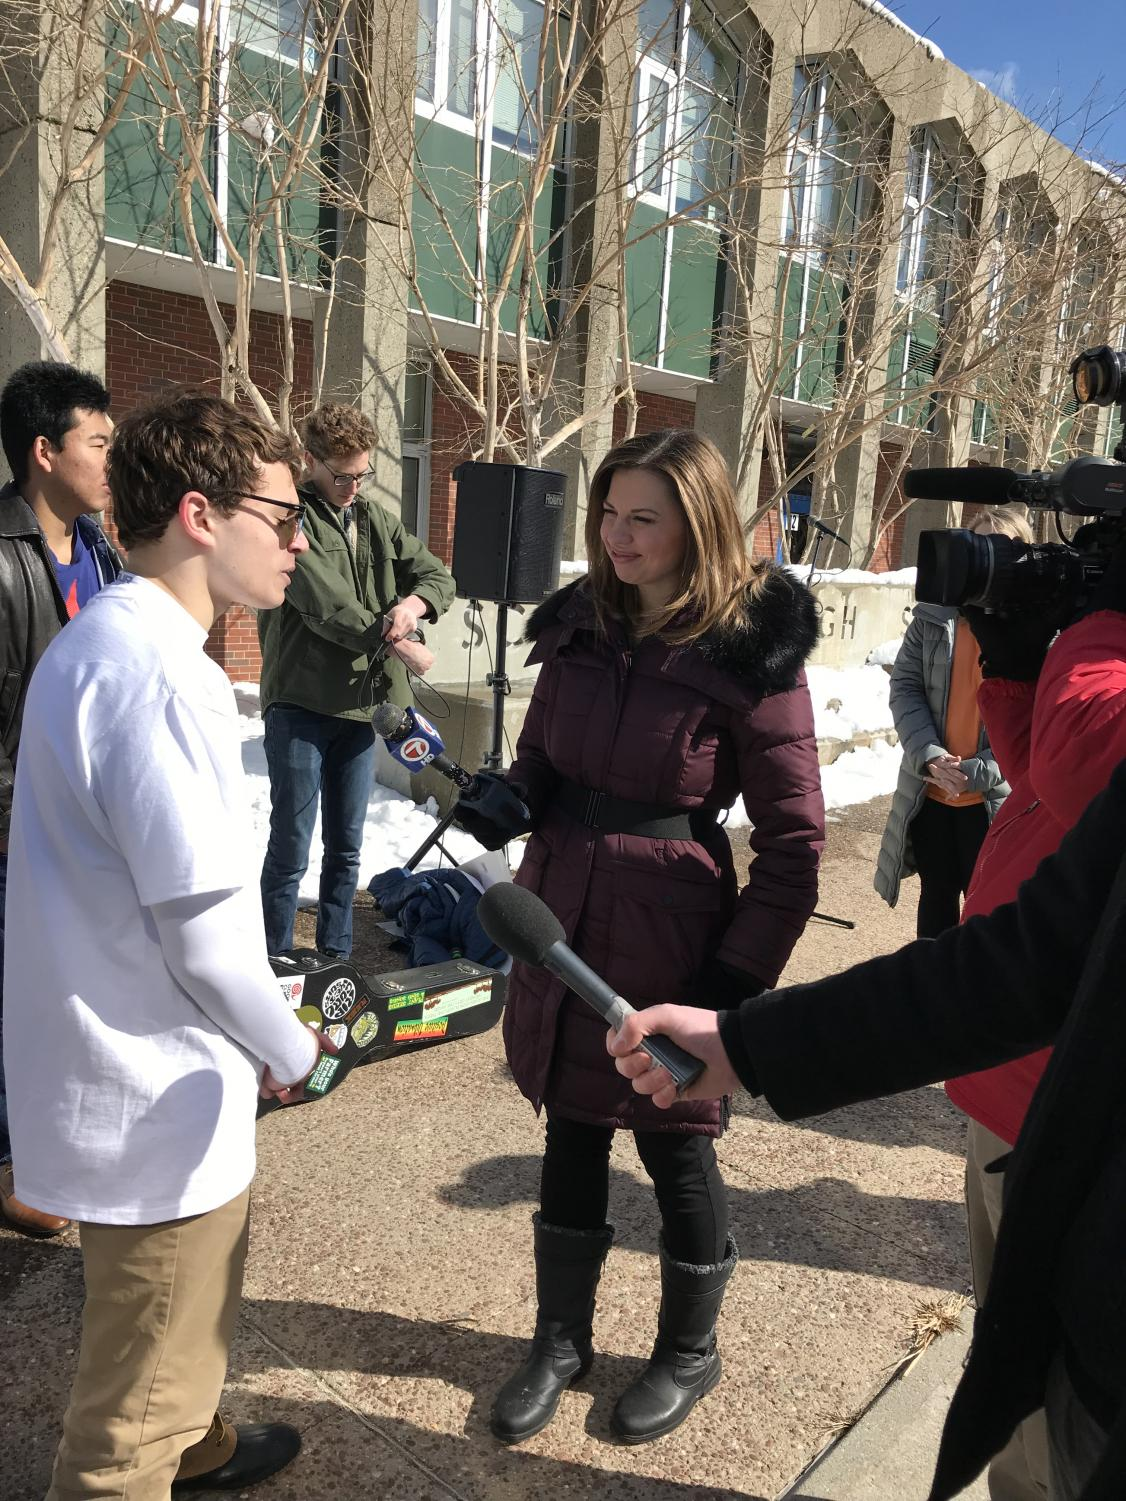 Ryan Frankel was interviewed by Kim Lucey from Channel 7 after SHS walkout on March 15